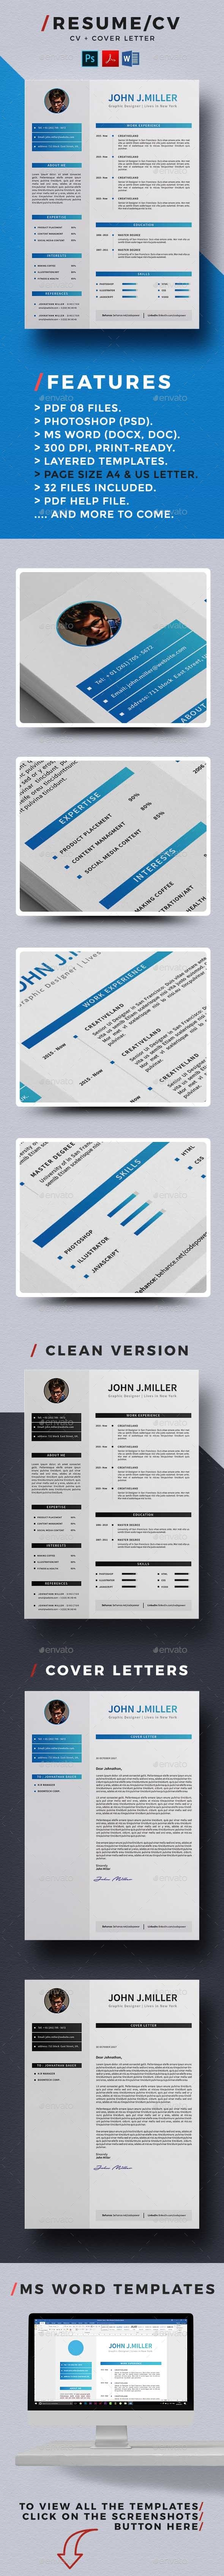 Resume Make a positive impression with these naturally attractive resume templates. With a strong emphasis in typography, this templates will present your information concisely in a layout that is pleasing to the eye and easy to read. This minimal and modern design will highlight your most relevant features to get you noticed and create a consistent voice of your personal brand in all communications..